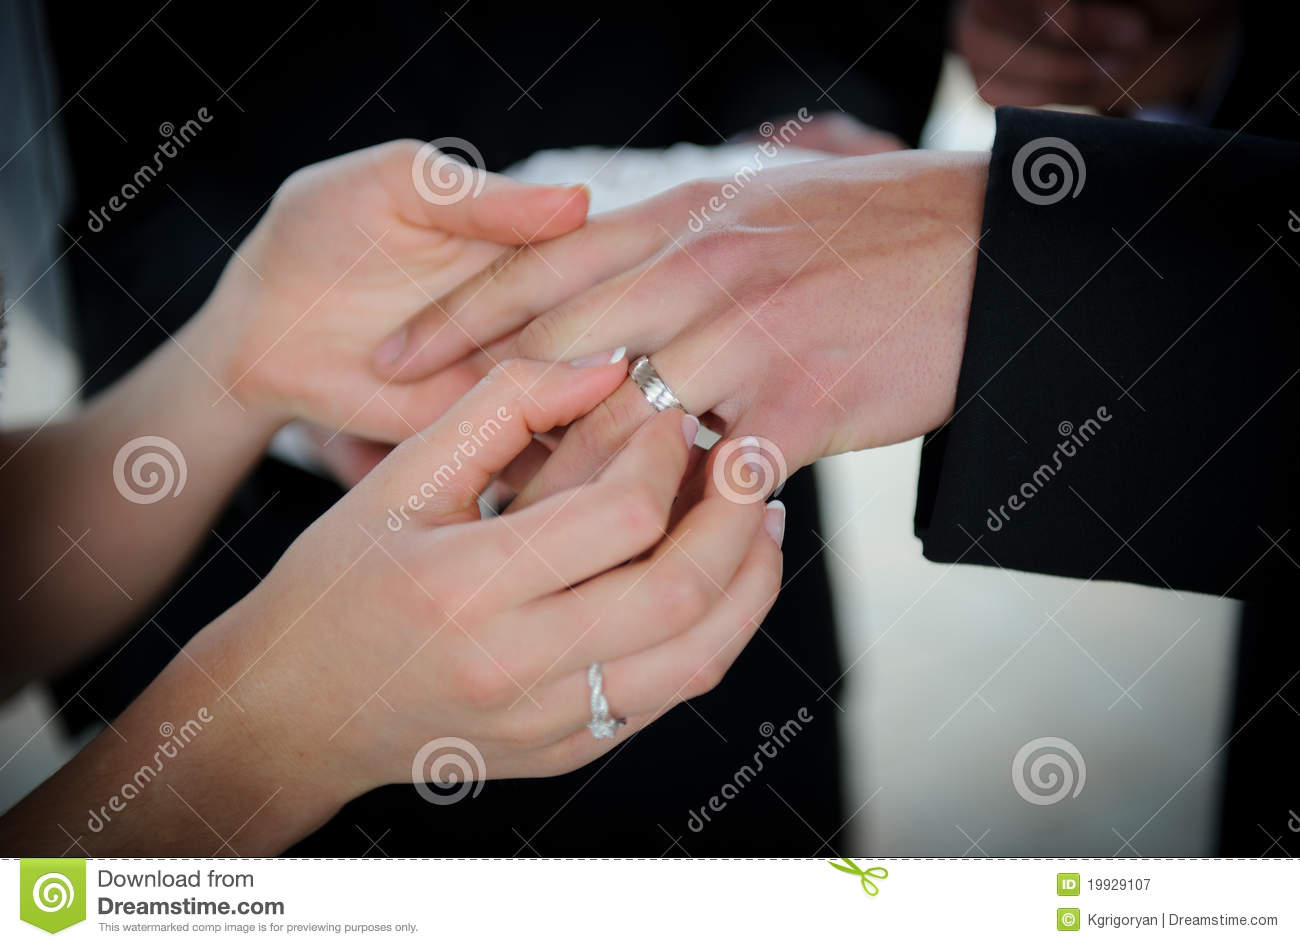 Wedding rings exchange stock image. Image of diamond - 19929107